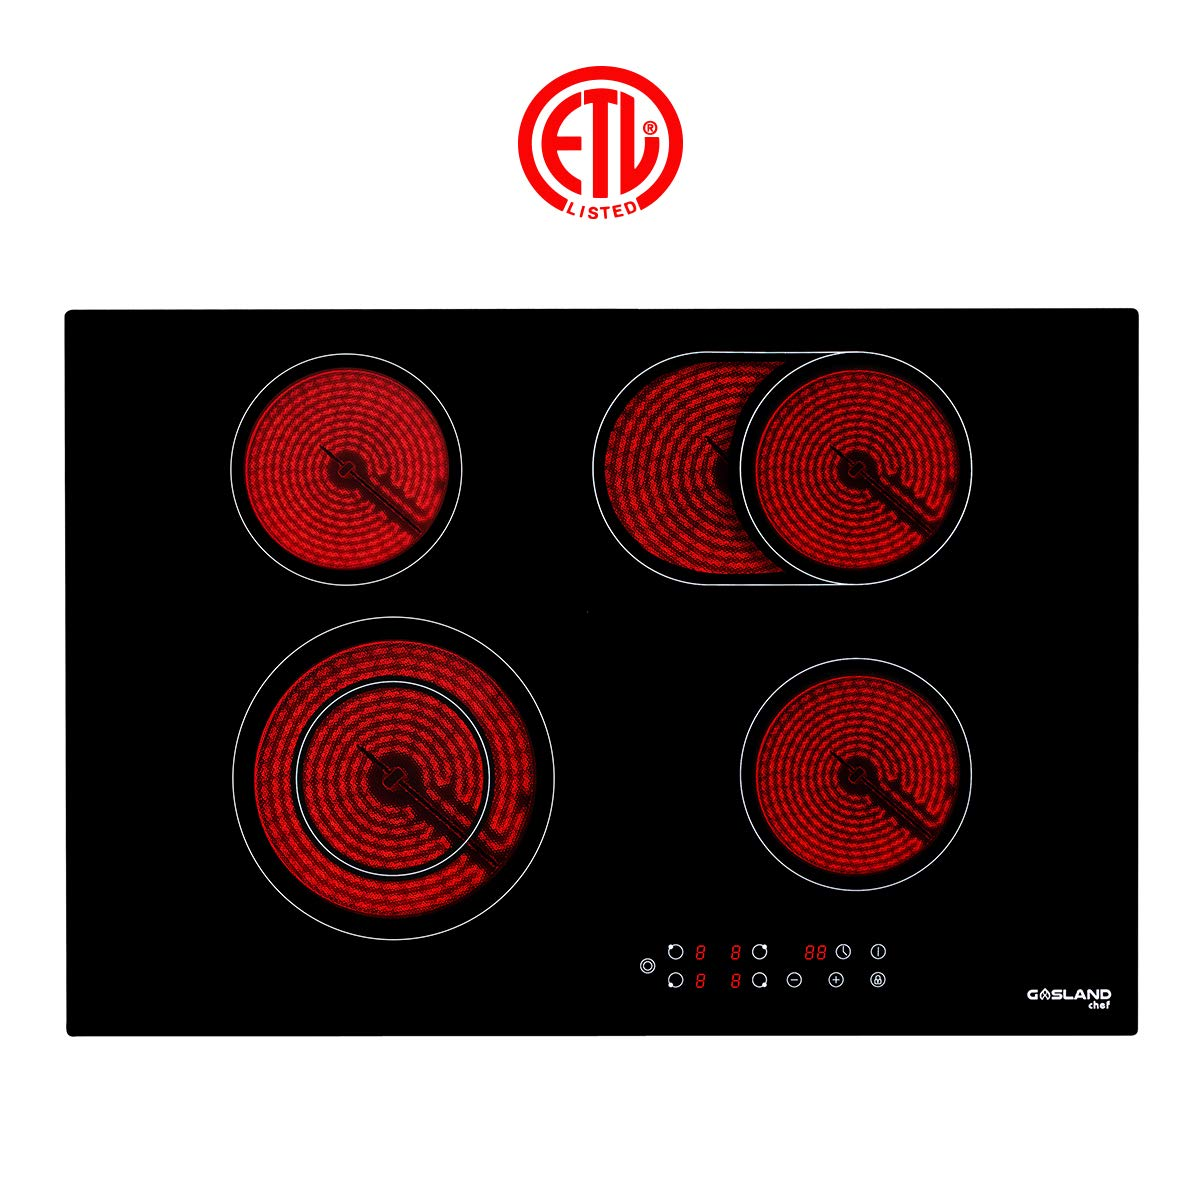 ETL Safety Certified Electric Stove With 4 Burners Electric Cooktop Vitro Ceramic Surface Radiant Electric Cooktop Kids Safety Lock Easy To Clean Gasland chef CH77BF 30 Built-in Electric Stove